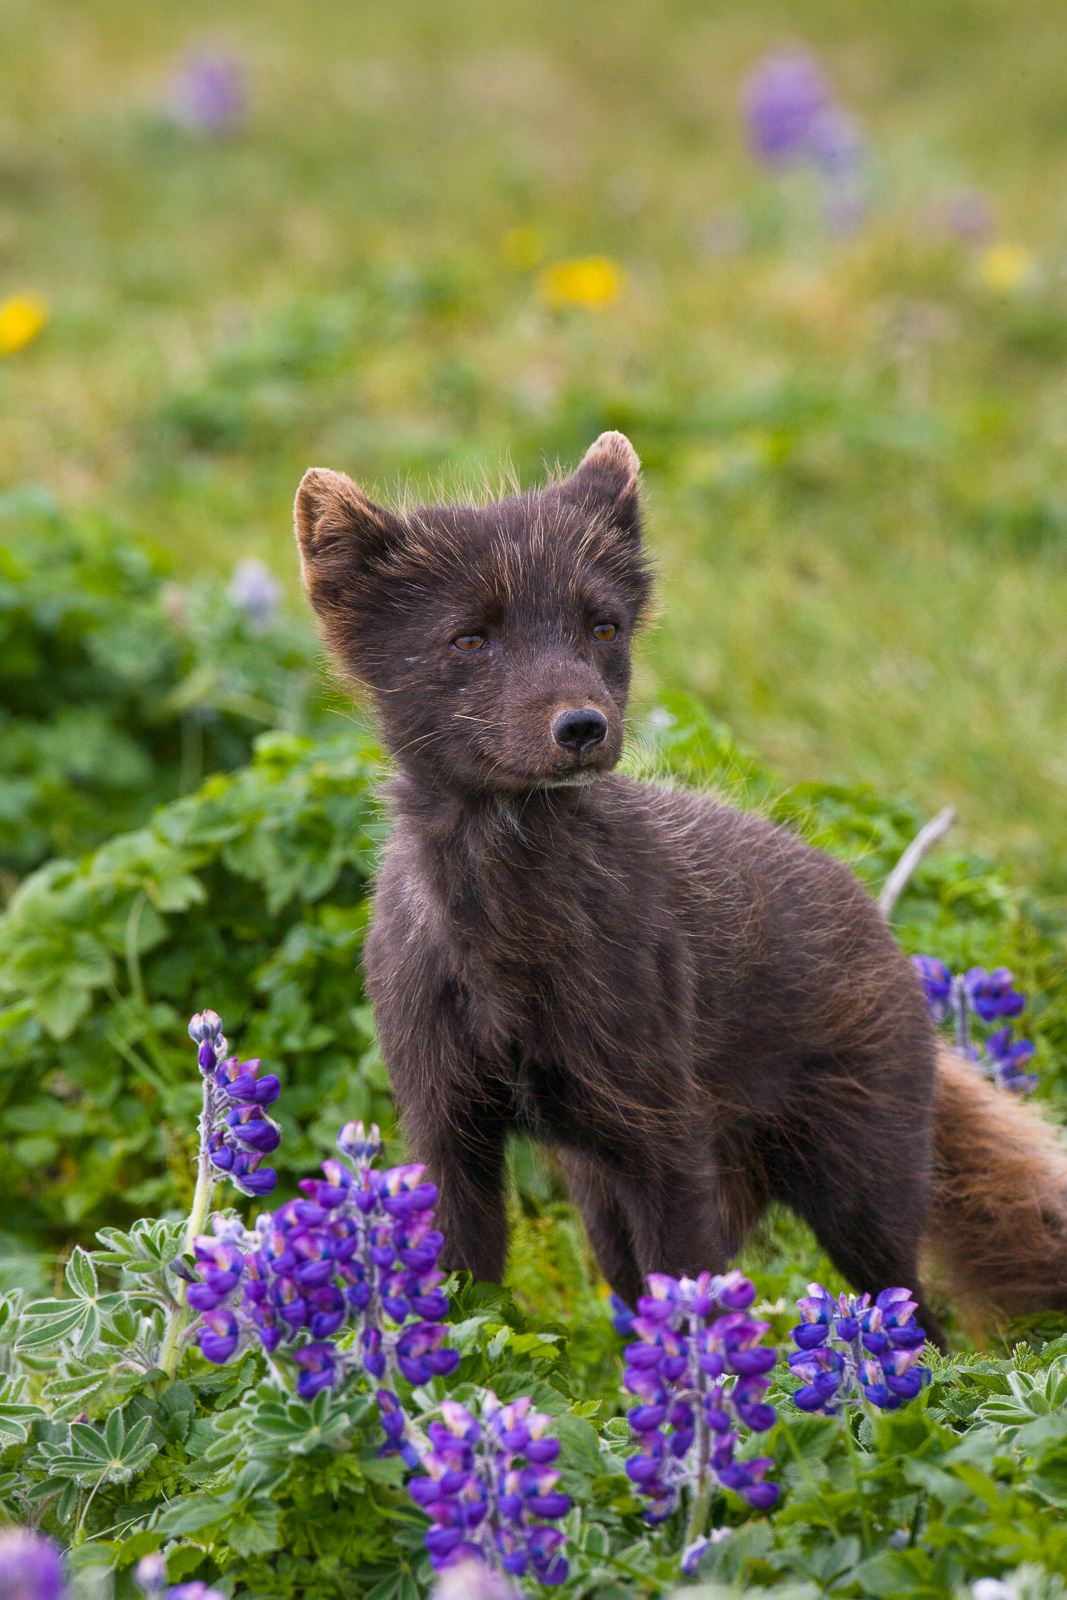 This little artic fox sports his brown suite for a day out among the spring flowers.